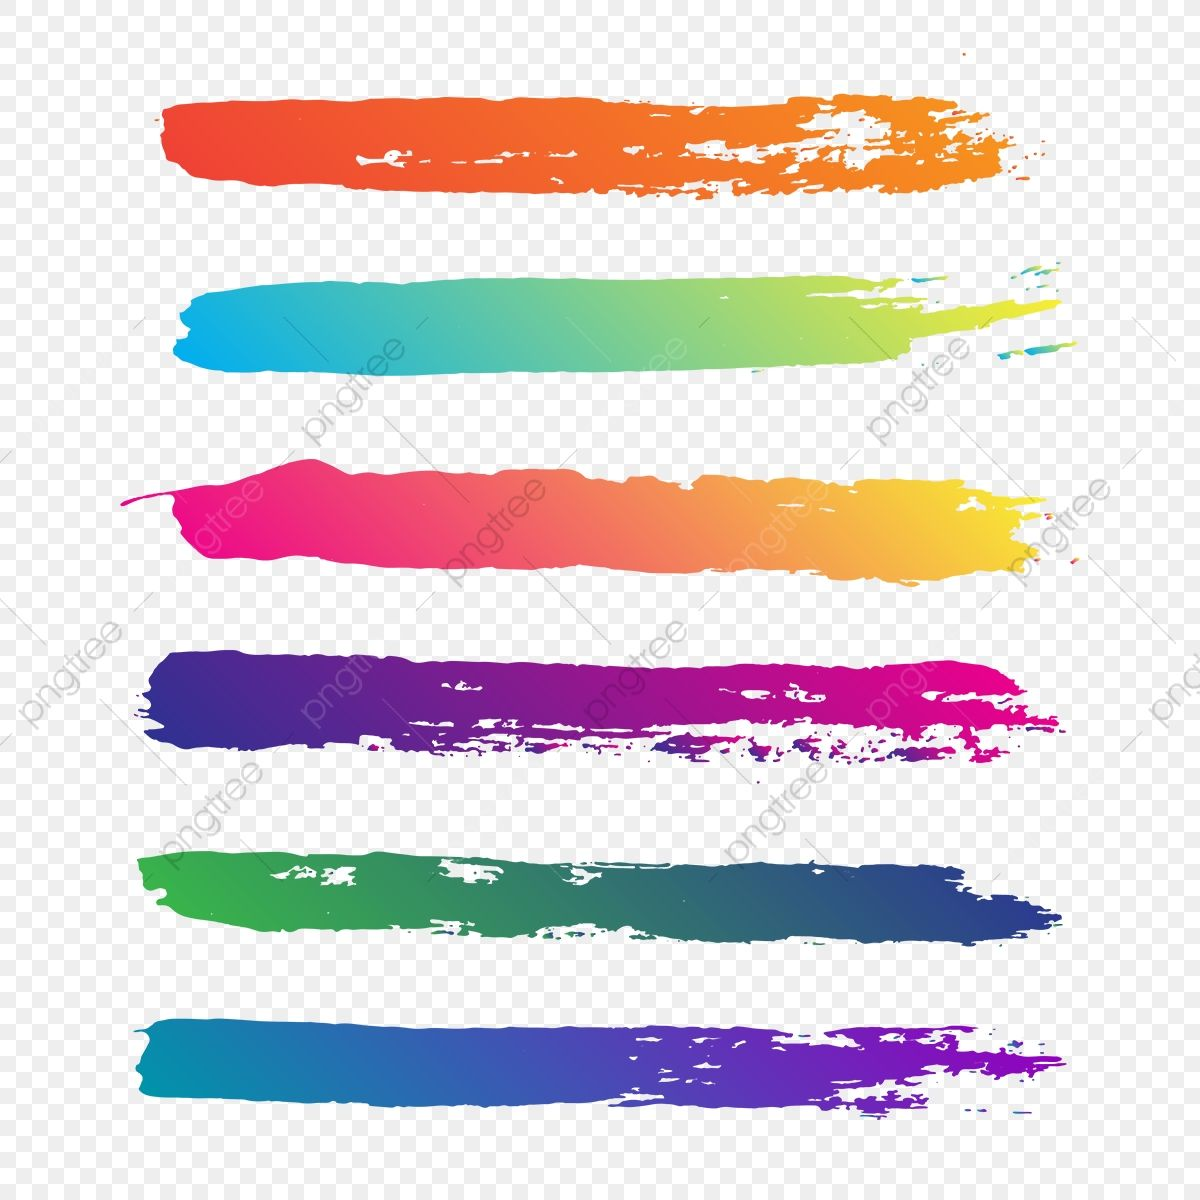 Orange Brush Strokes On Background Abstract Texture Png And